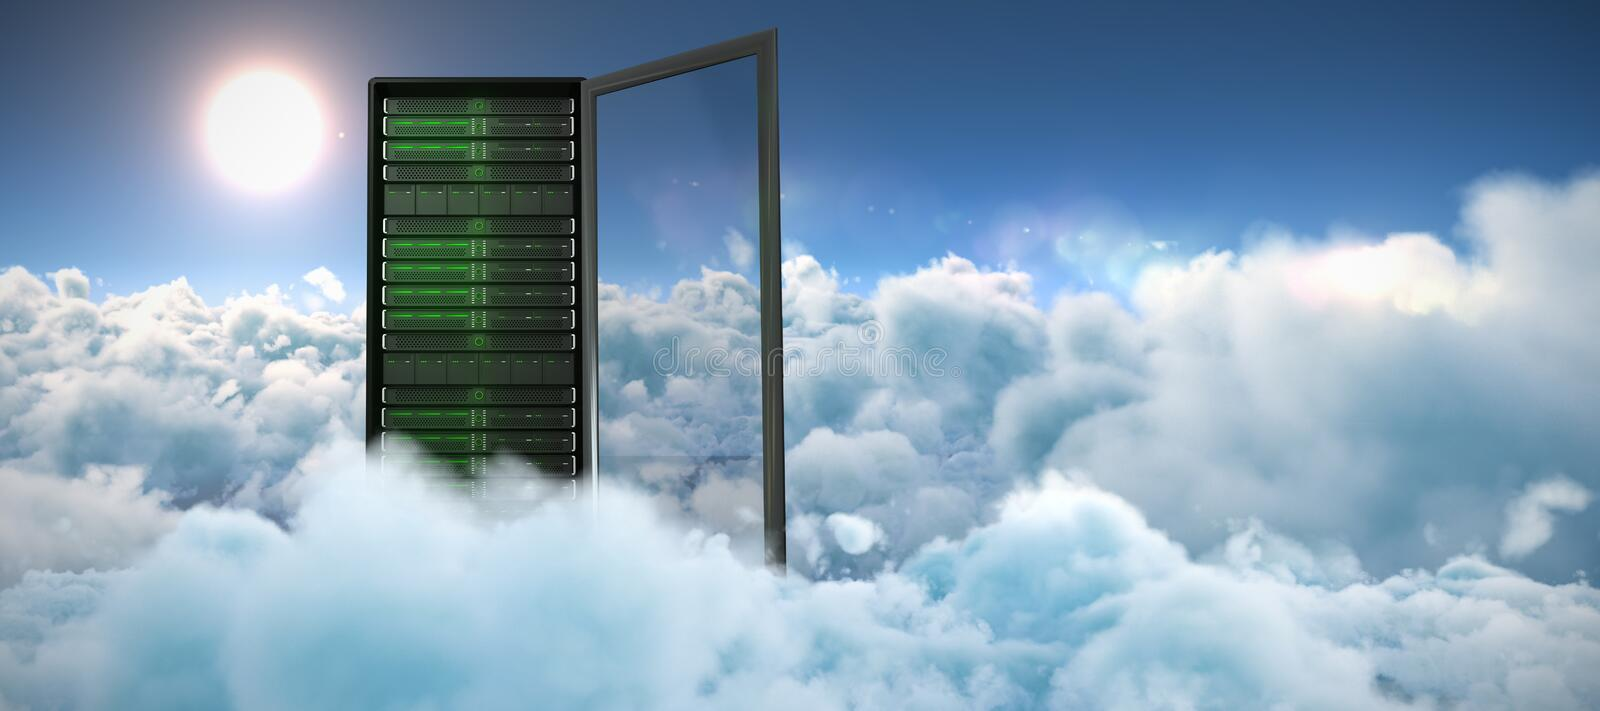 Composite image of server tower stock illustration